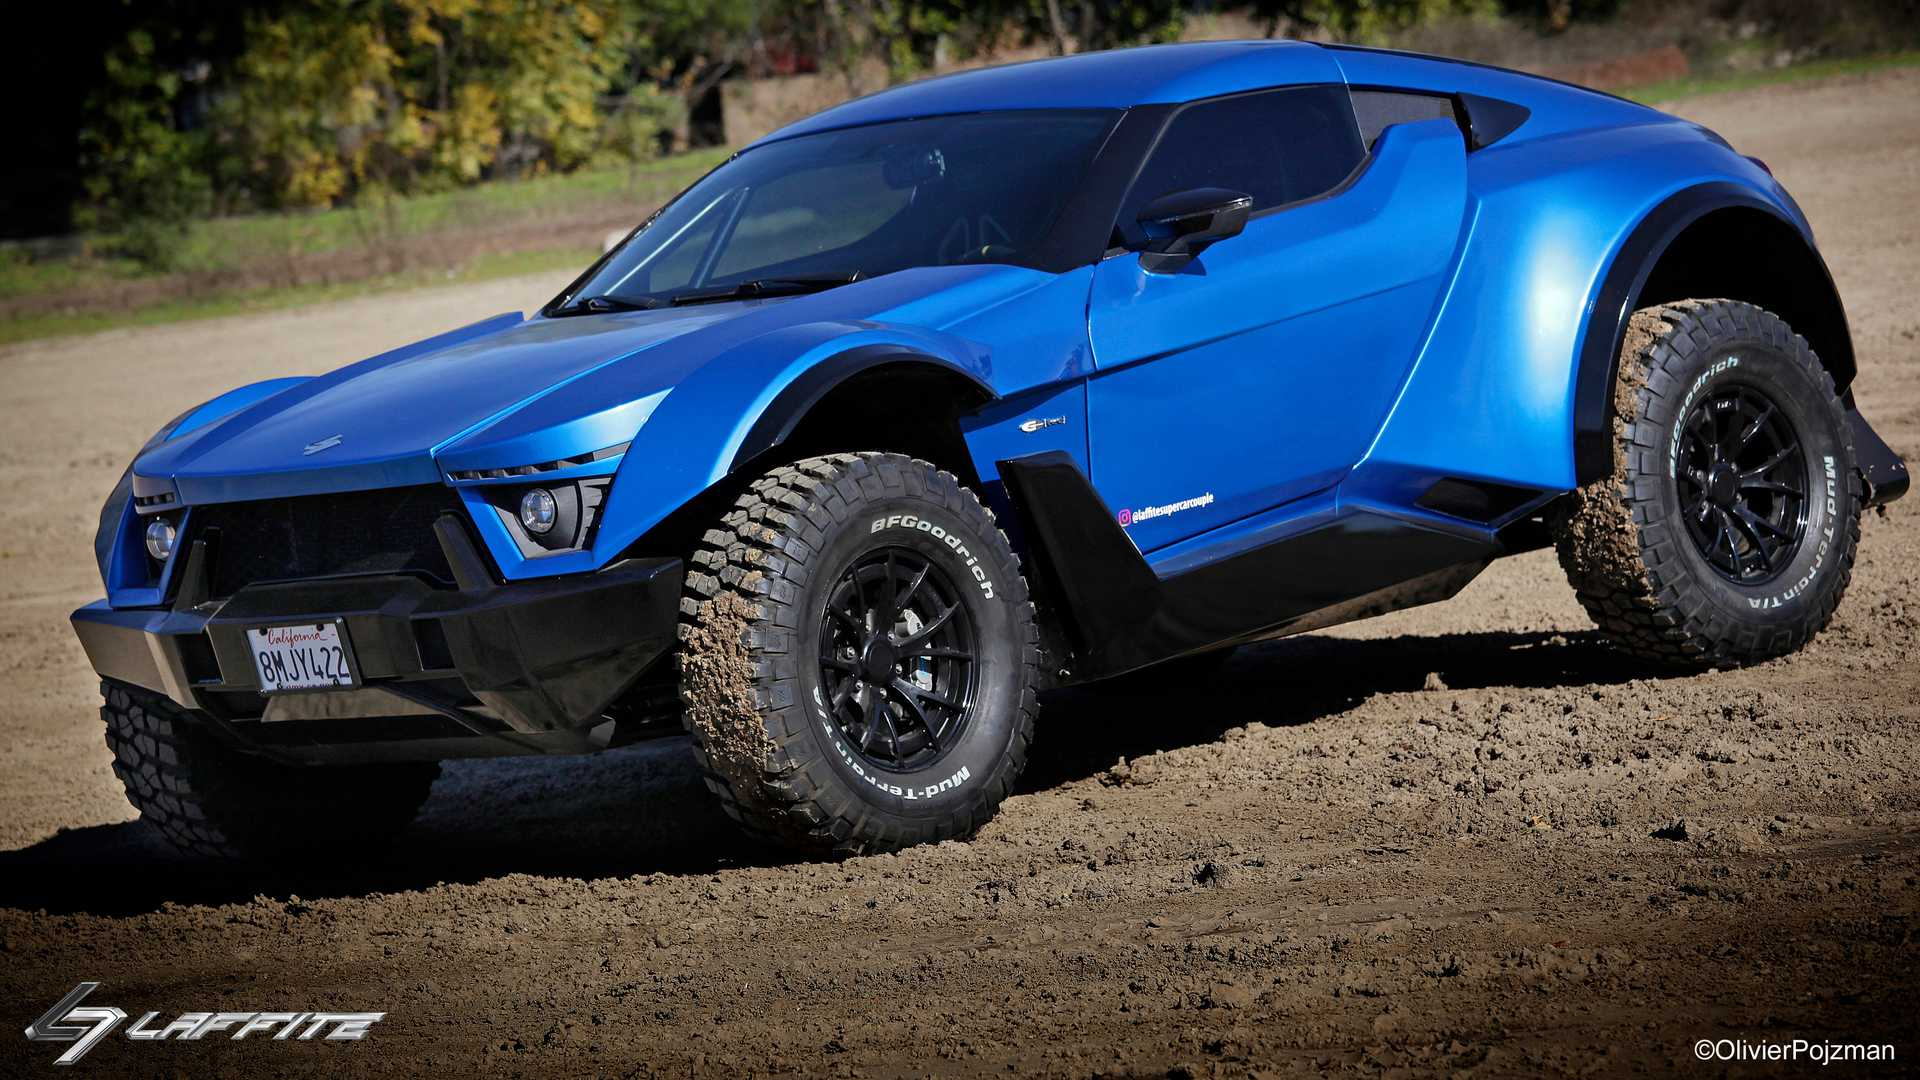 Laffite G-Tec X-Road packs up to 720 bhp and loves getting dirty